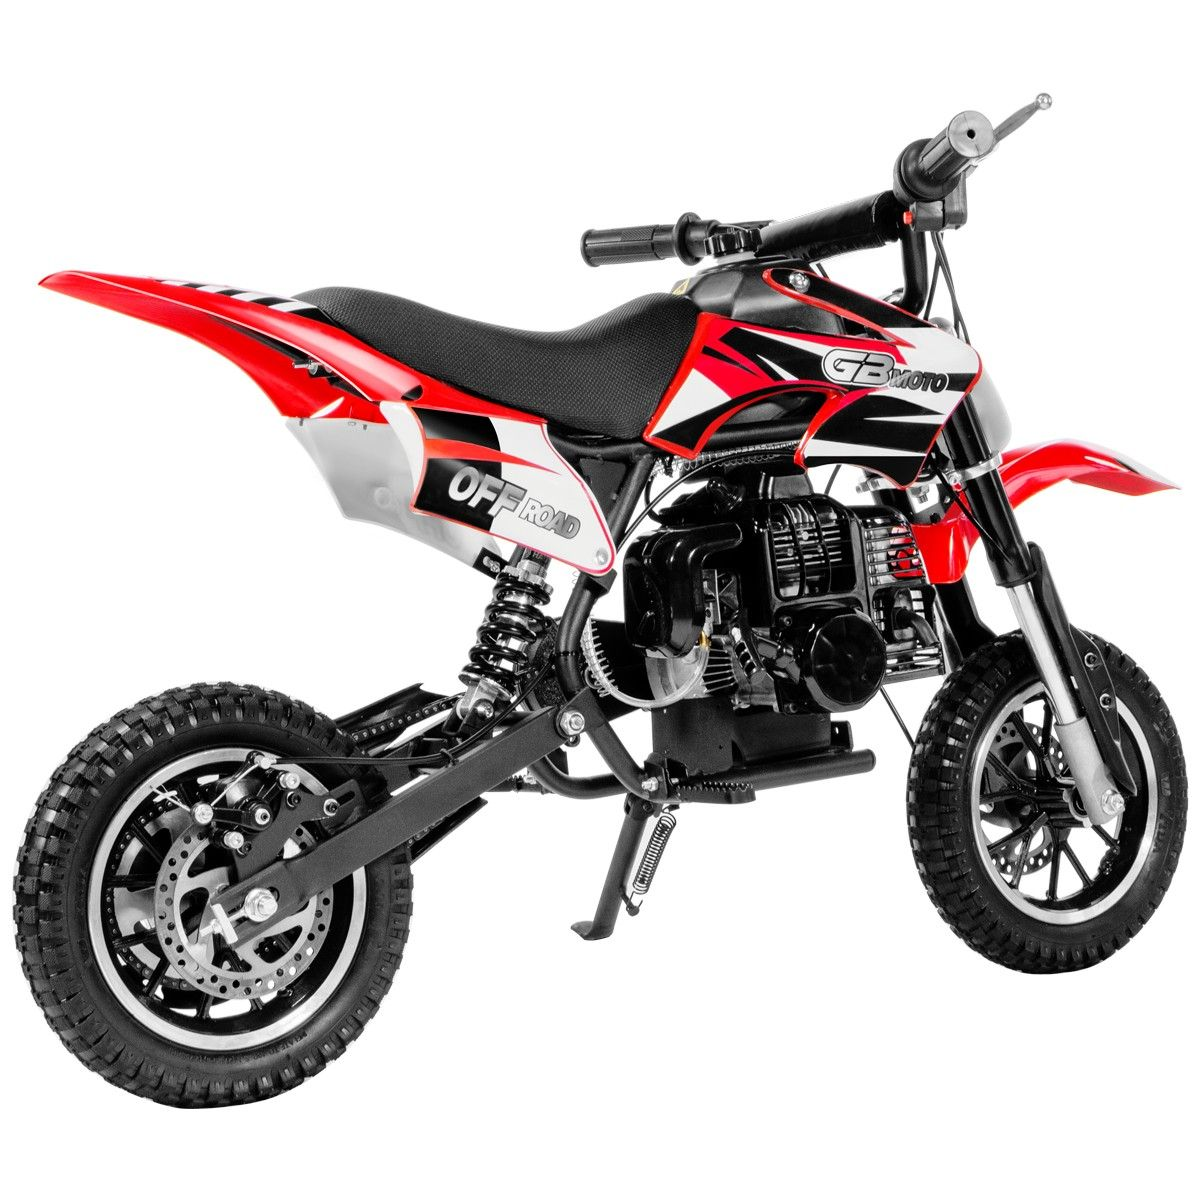 Https Www Walmart Com Ip Xtremepowerus 49cc 2 Stroke Gas Power Mini Off Road Dirt Bike Motorcycle Ride On Red Riding Motorcycle Dirt Bikes For Kids Dirt Bike